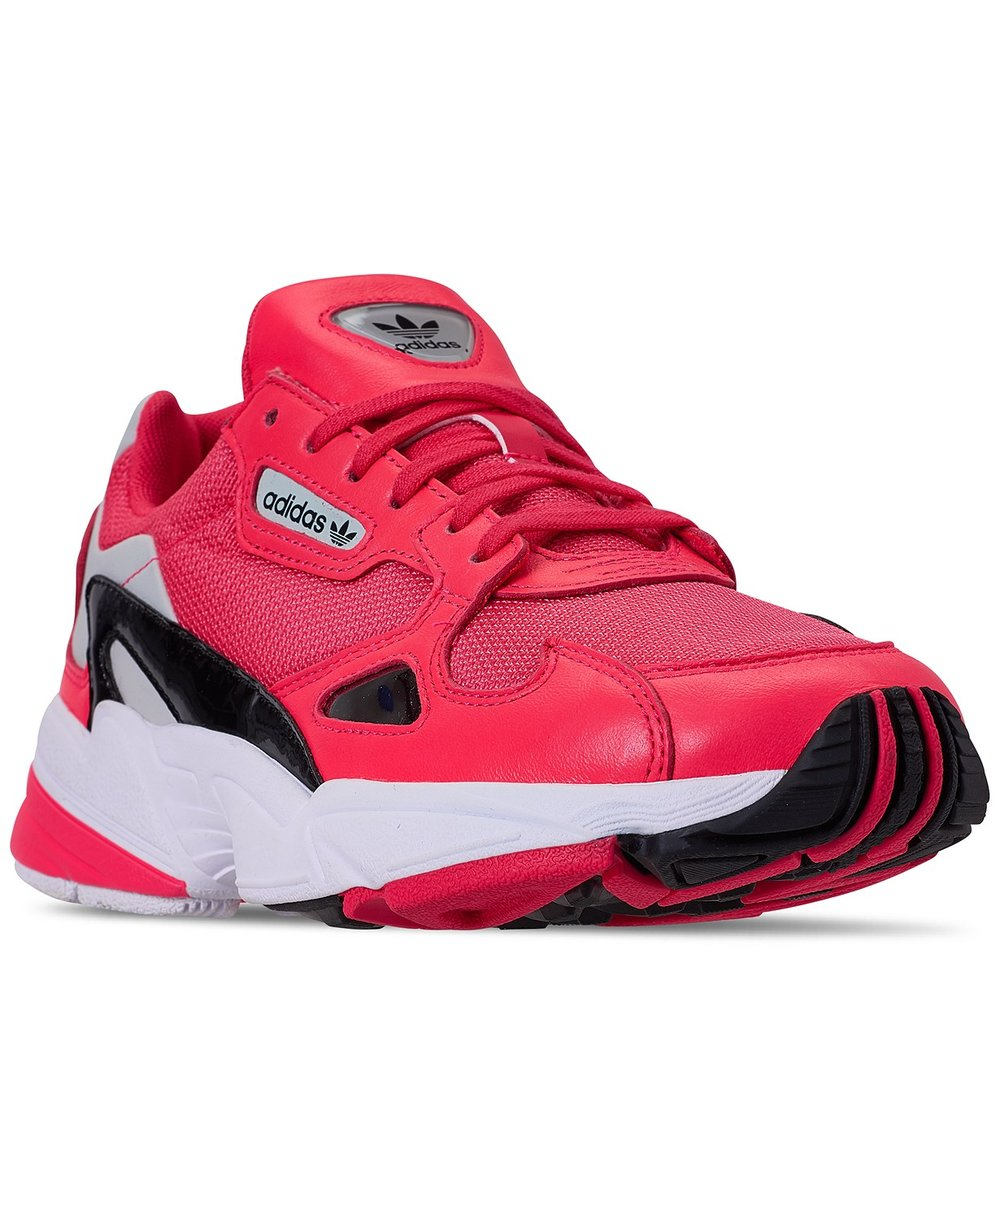 cnk-adidas-falcon-shock-red-2.jpg